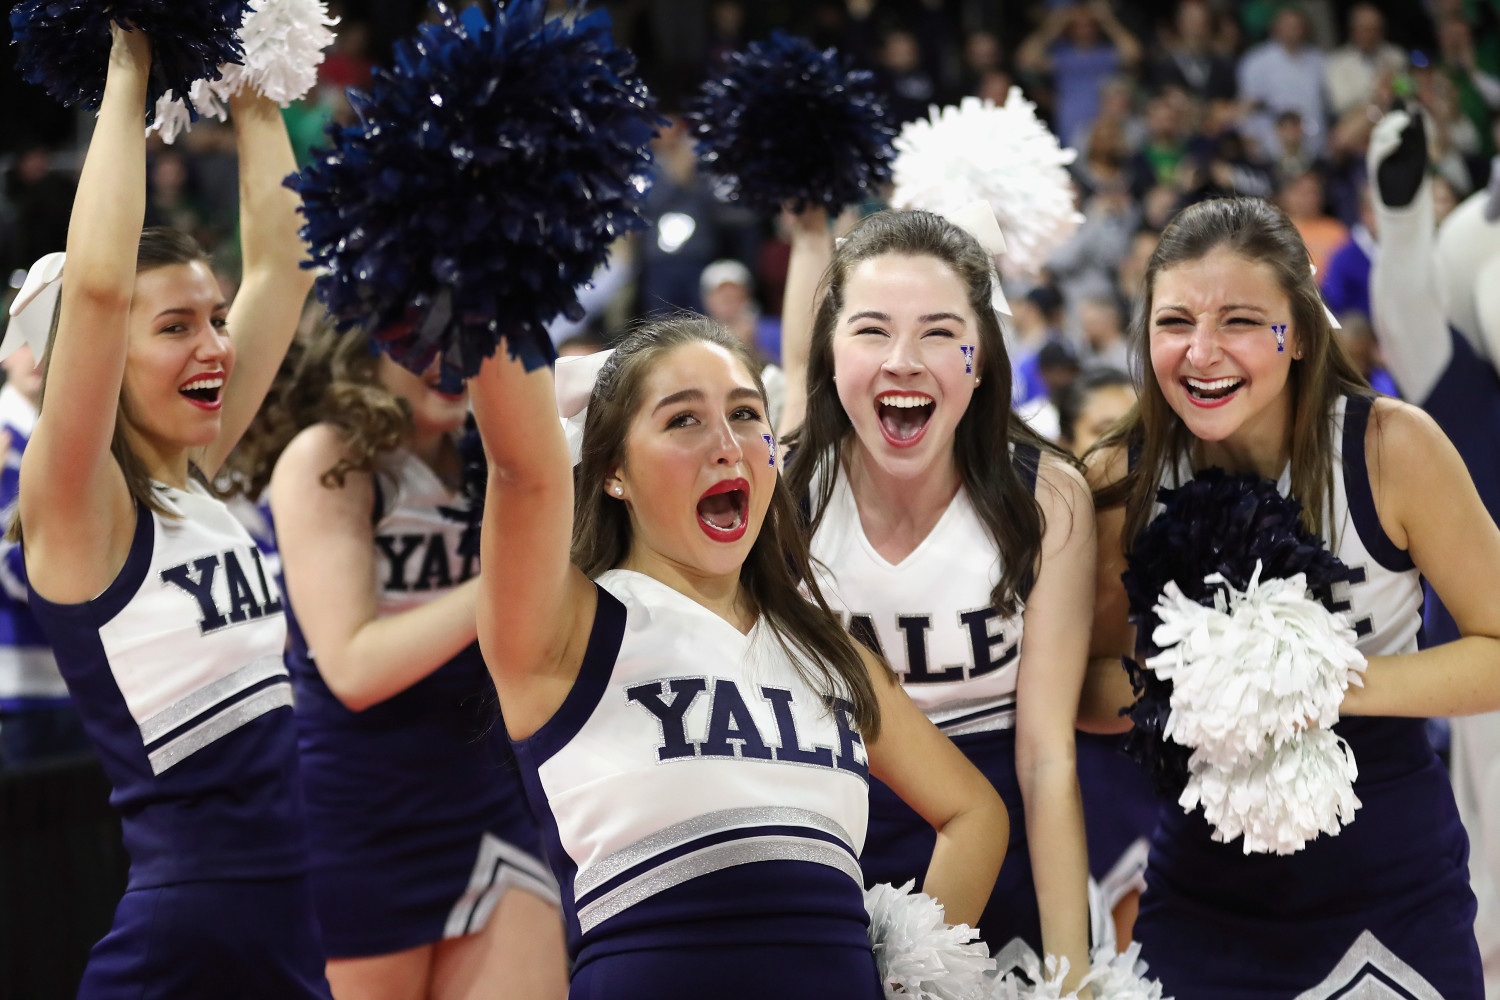 Cheerleaders from Yale (Getty Images)